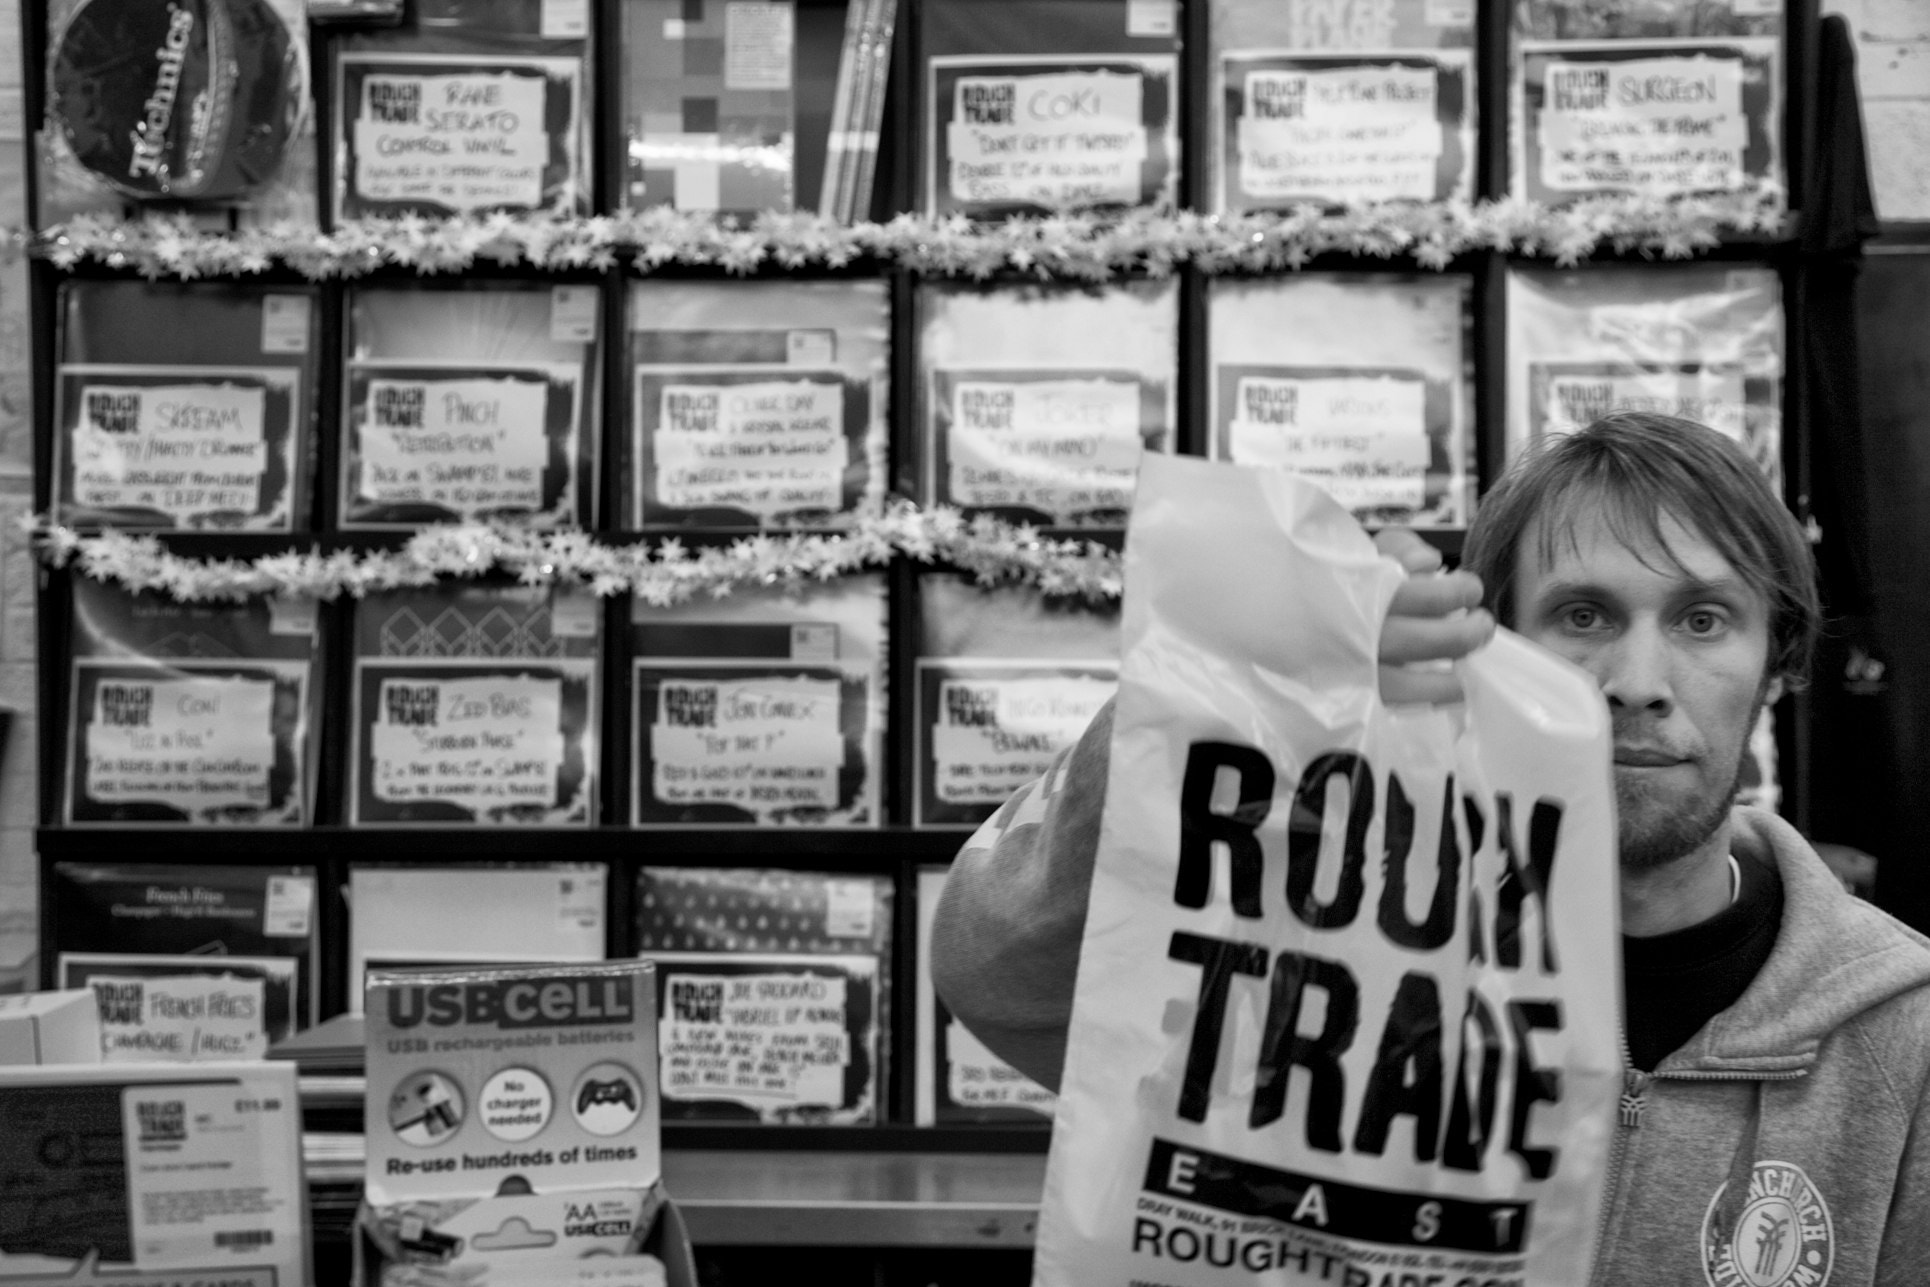 Photograph Rough Trade by Joe Atwere on 500px